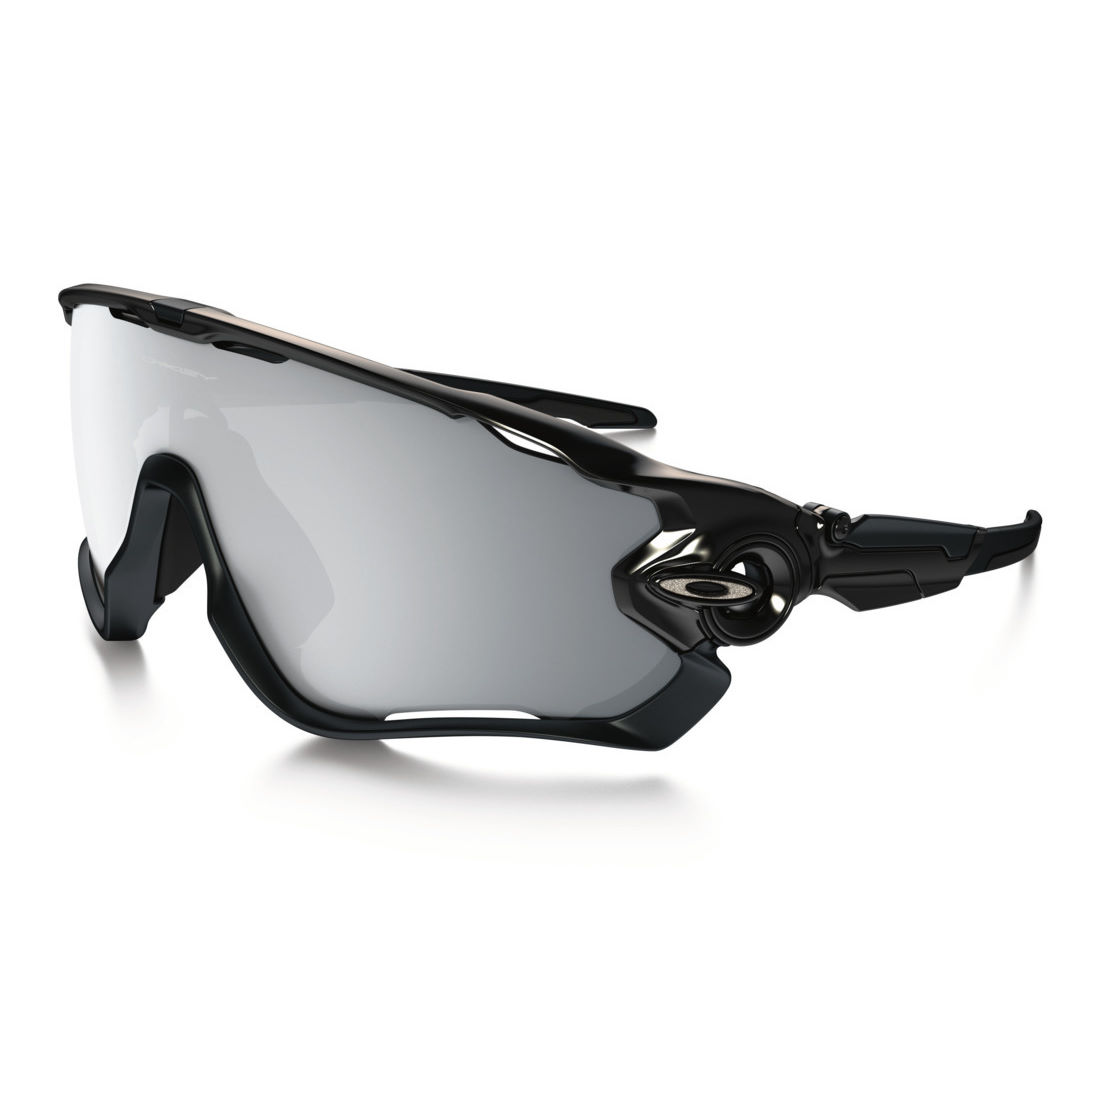 586315f16f2b Wiggle Cycle To Work | Oakley Jawbreaker Halo Black Chrome Iridium ...